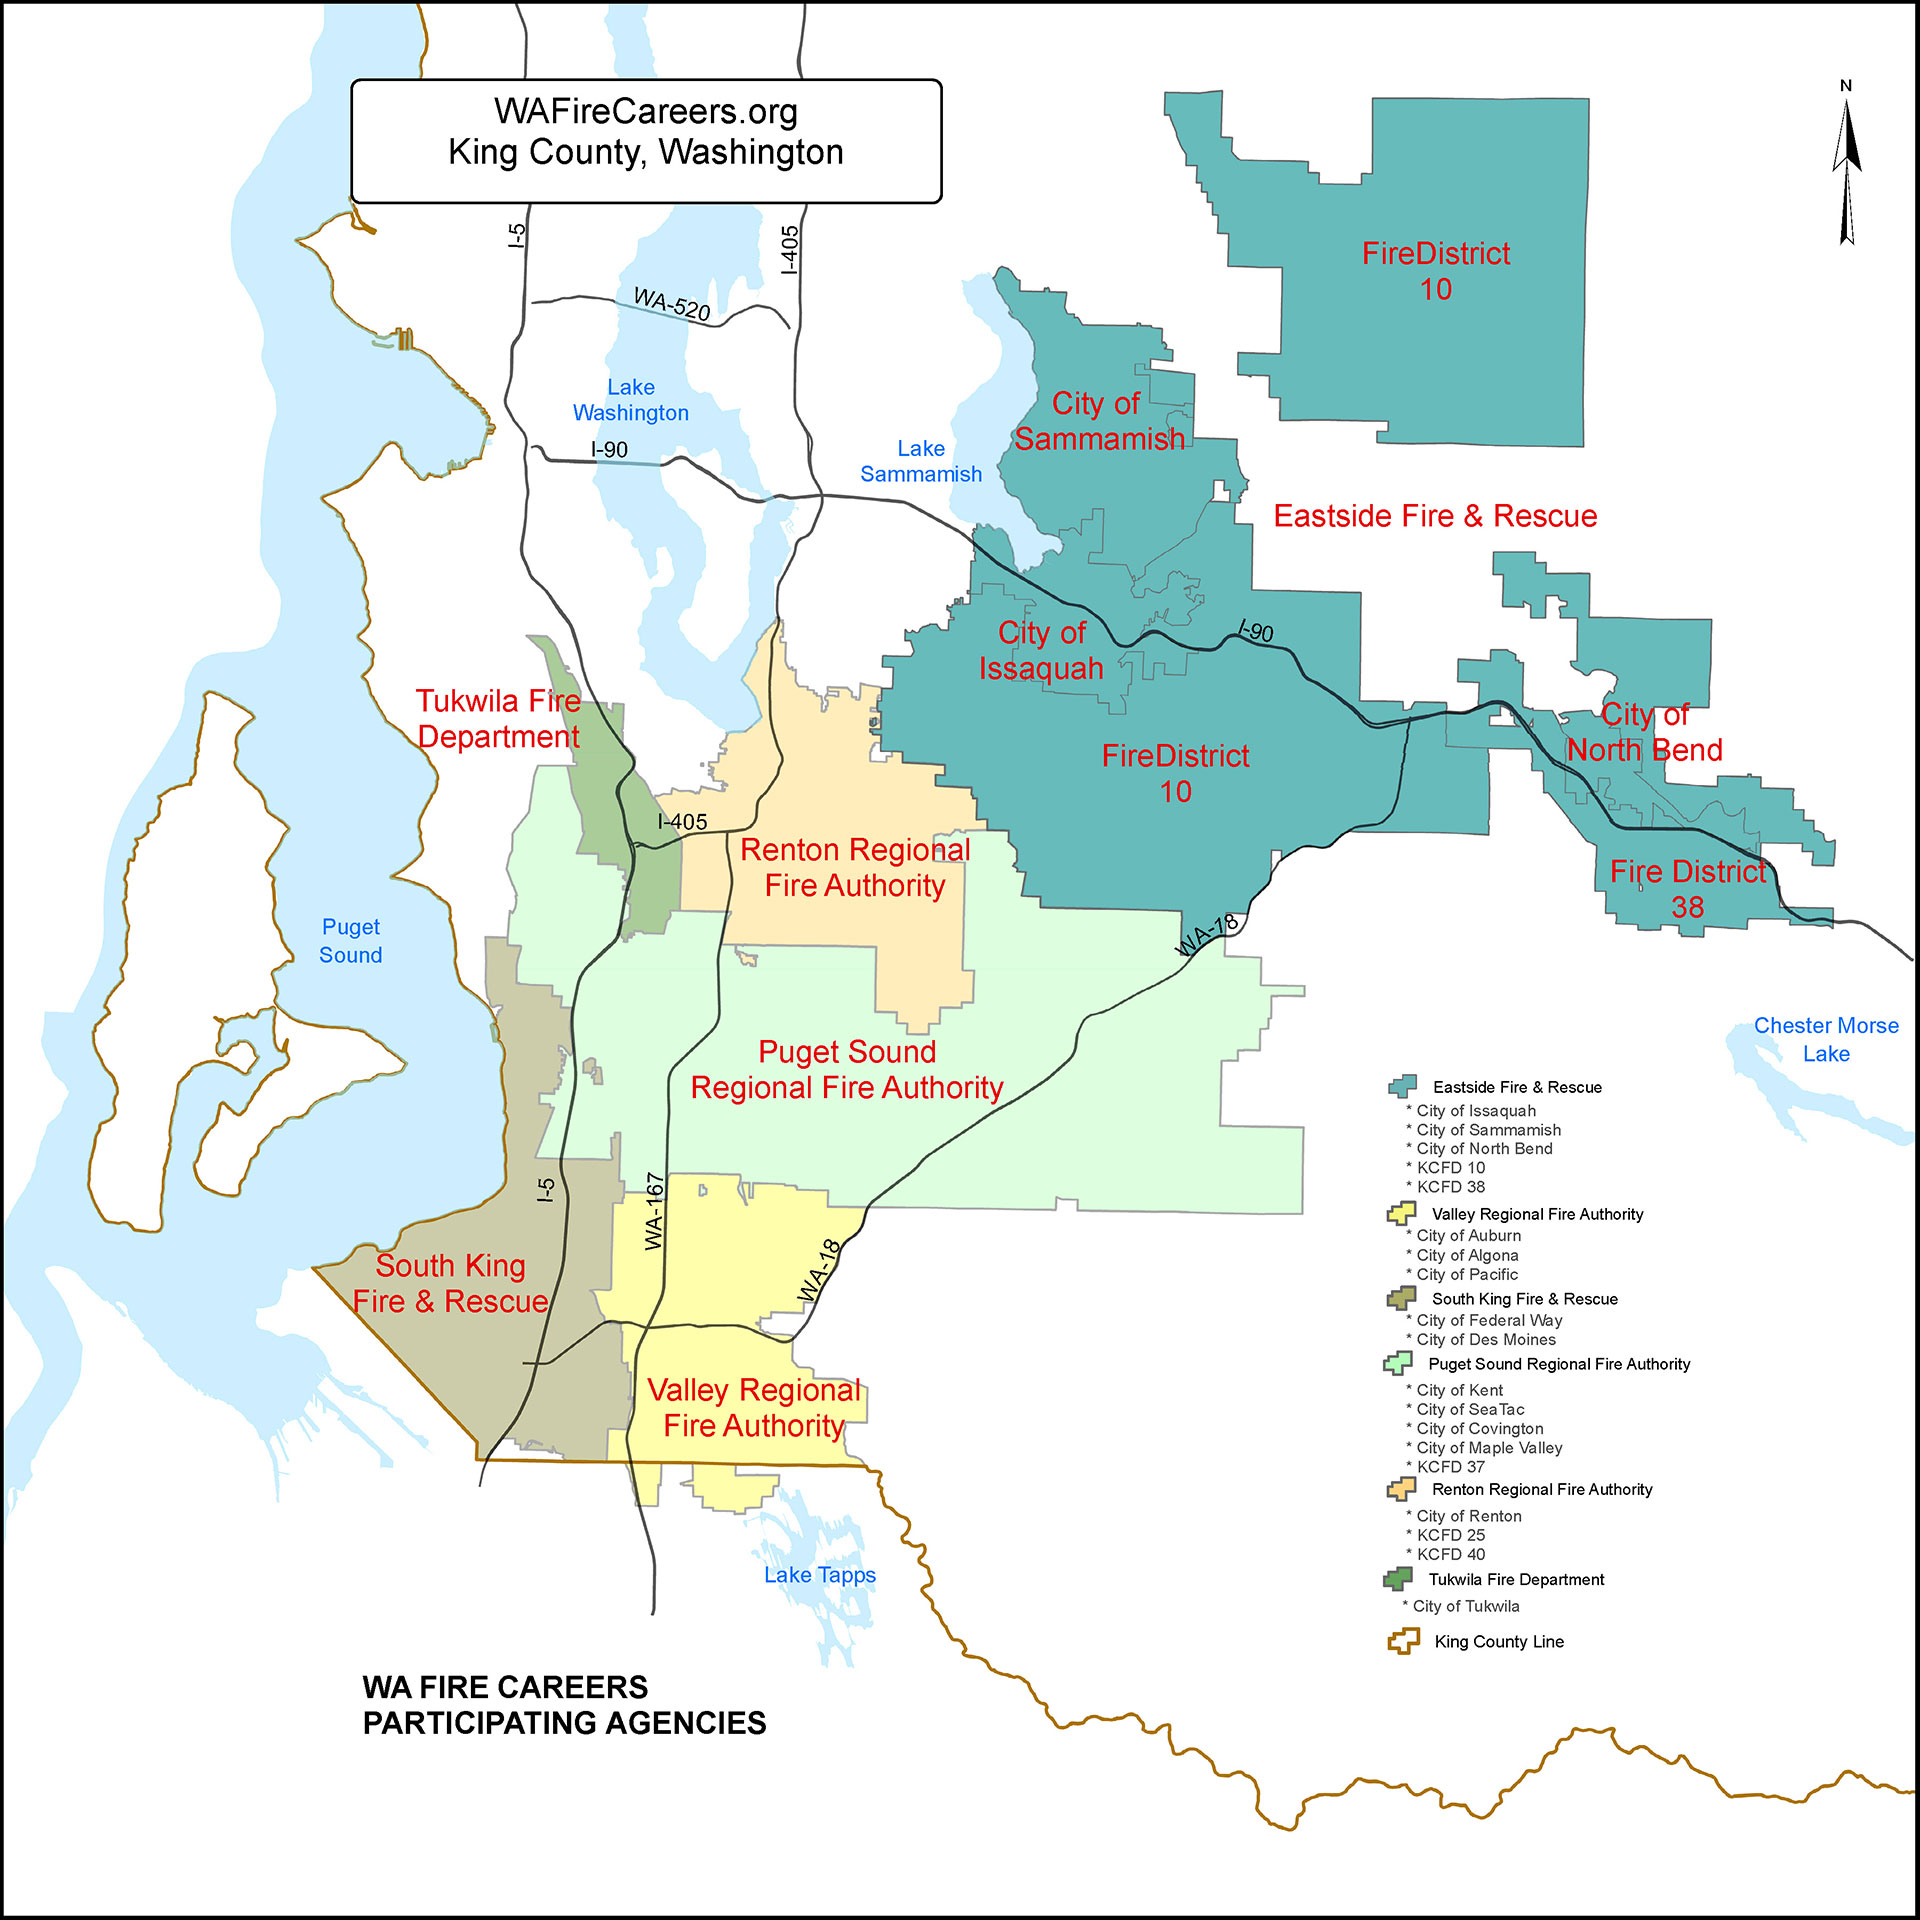 Image of a map showing the boundaries of each fire agency who participates in WA Fire Careers.